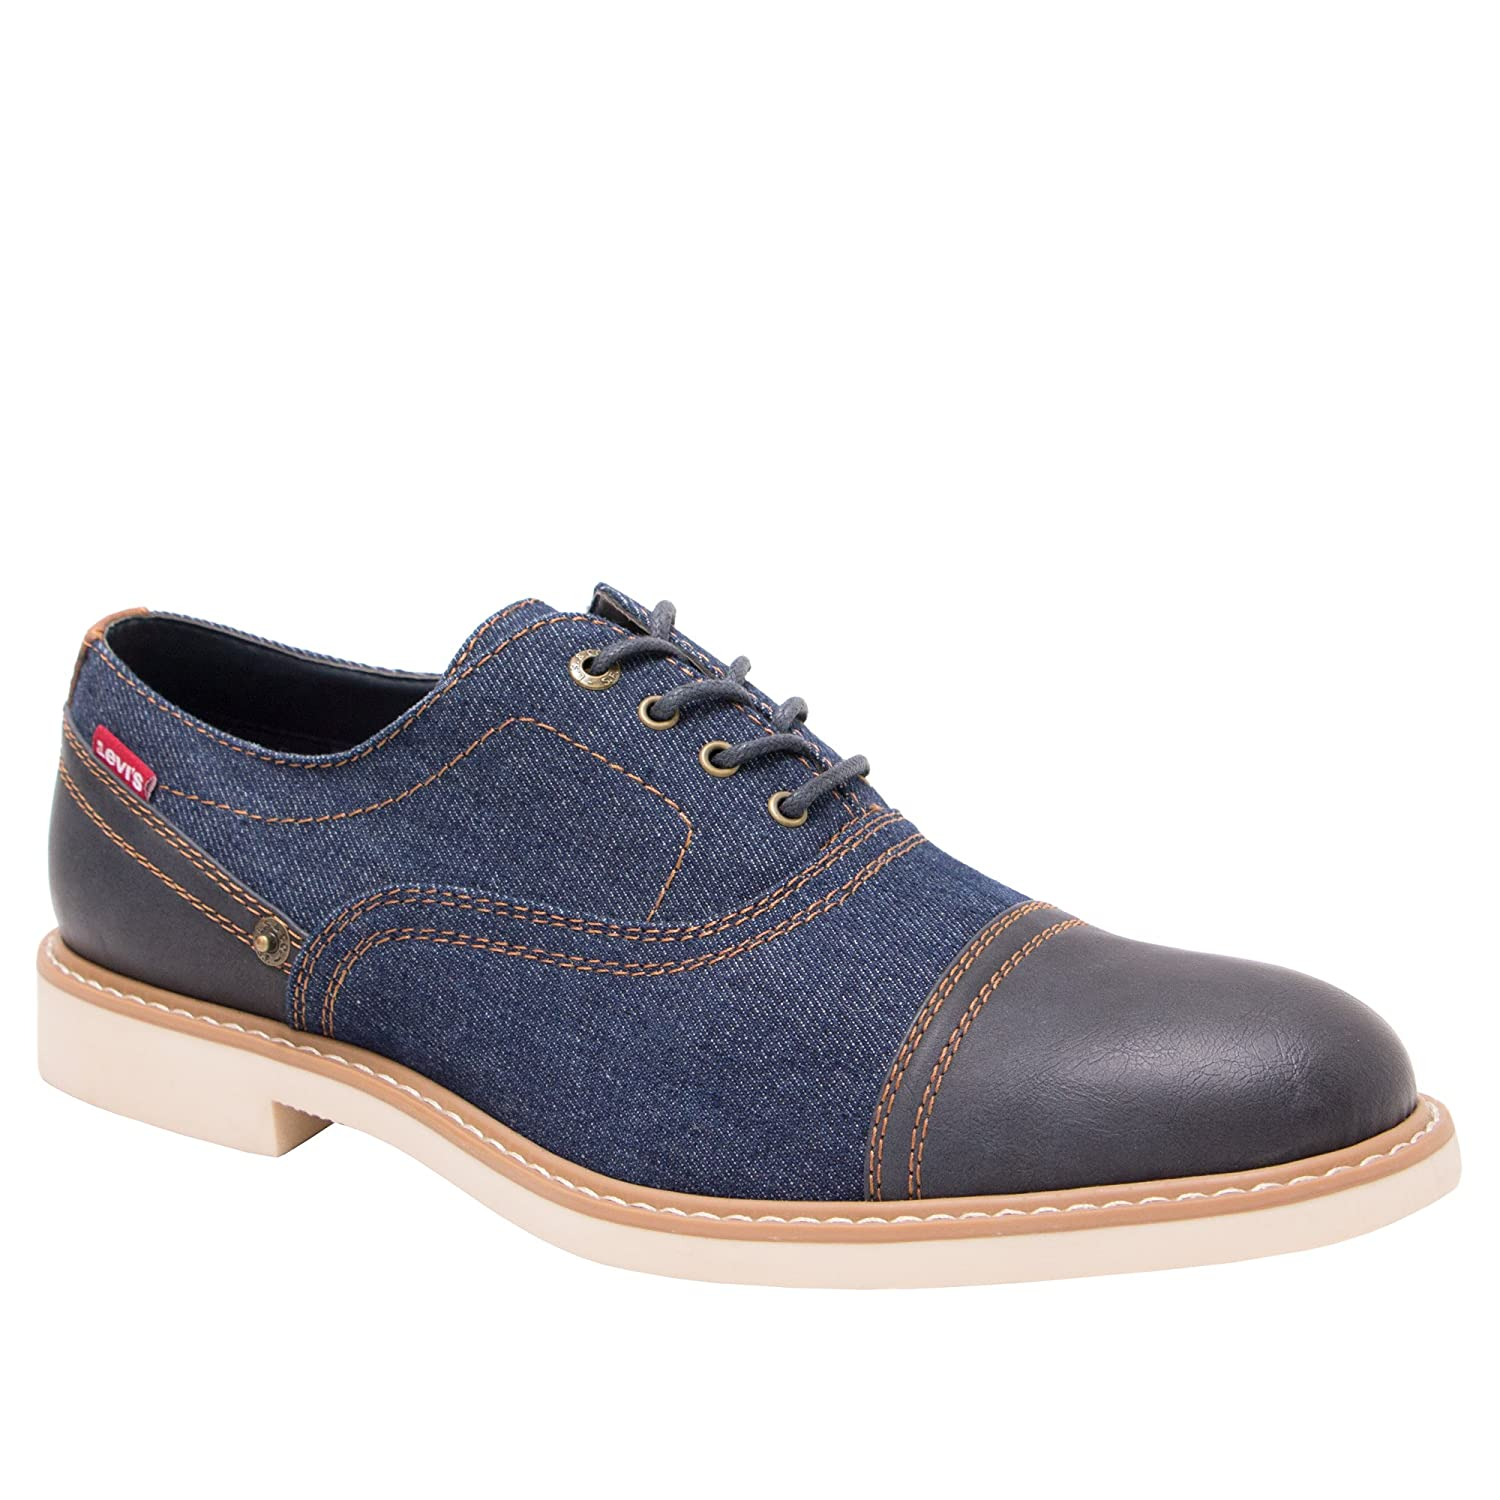 many styles low cost innovative design Levi's Men's Casual Essex Denim Oxford